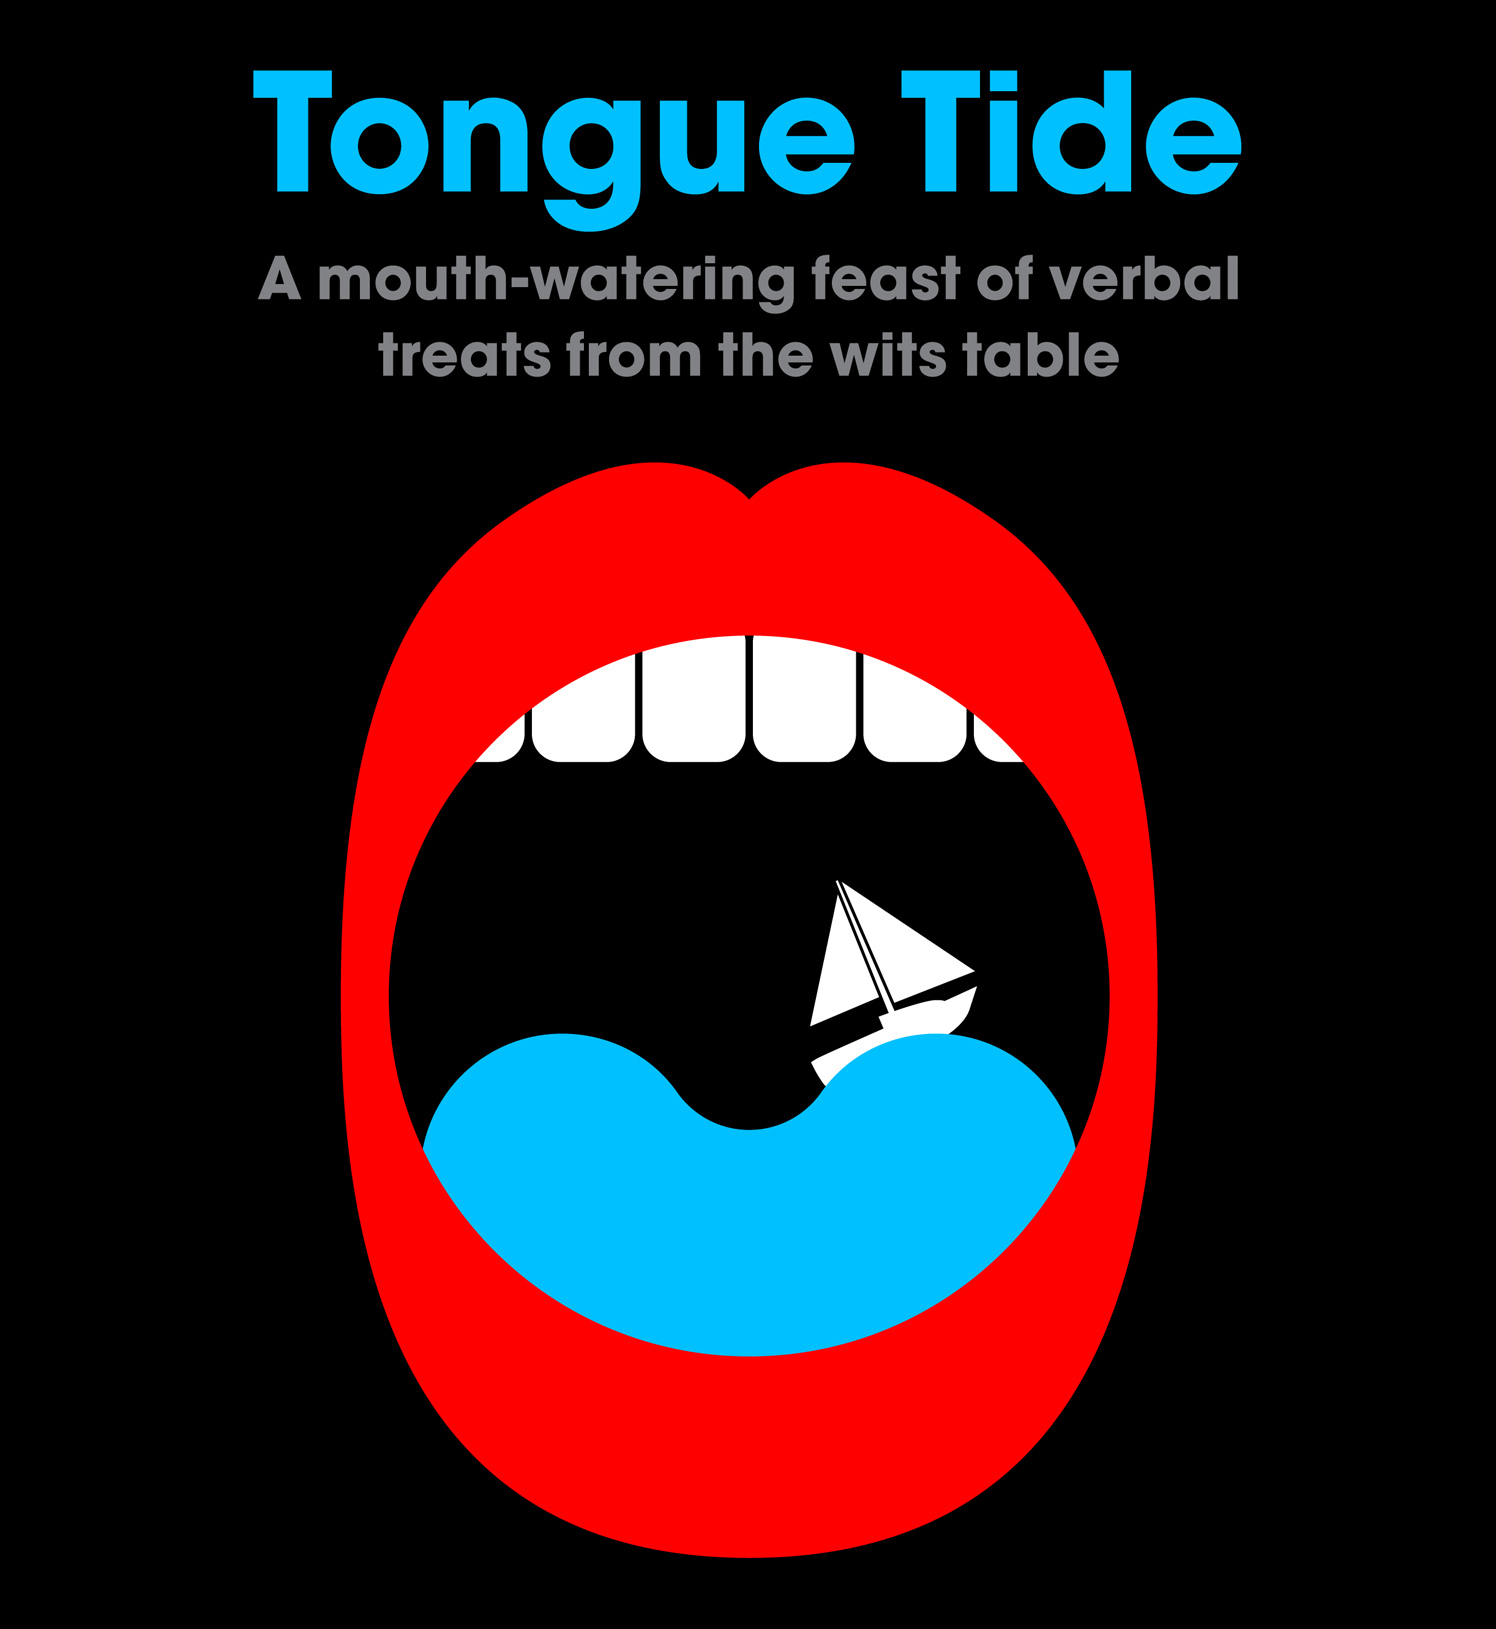 Tongue Tide Festival Poster